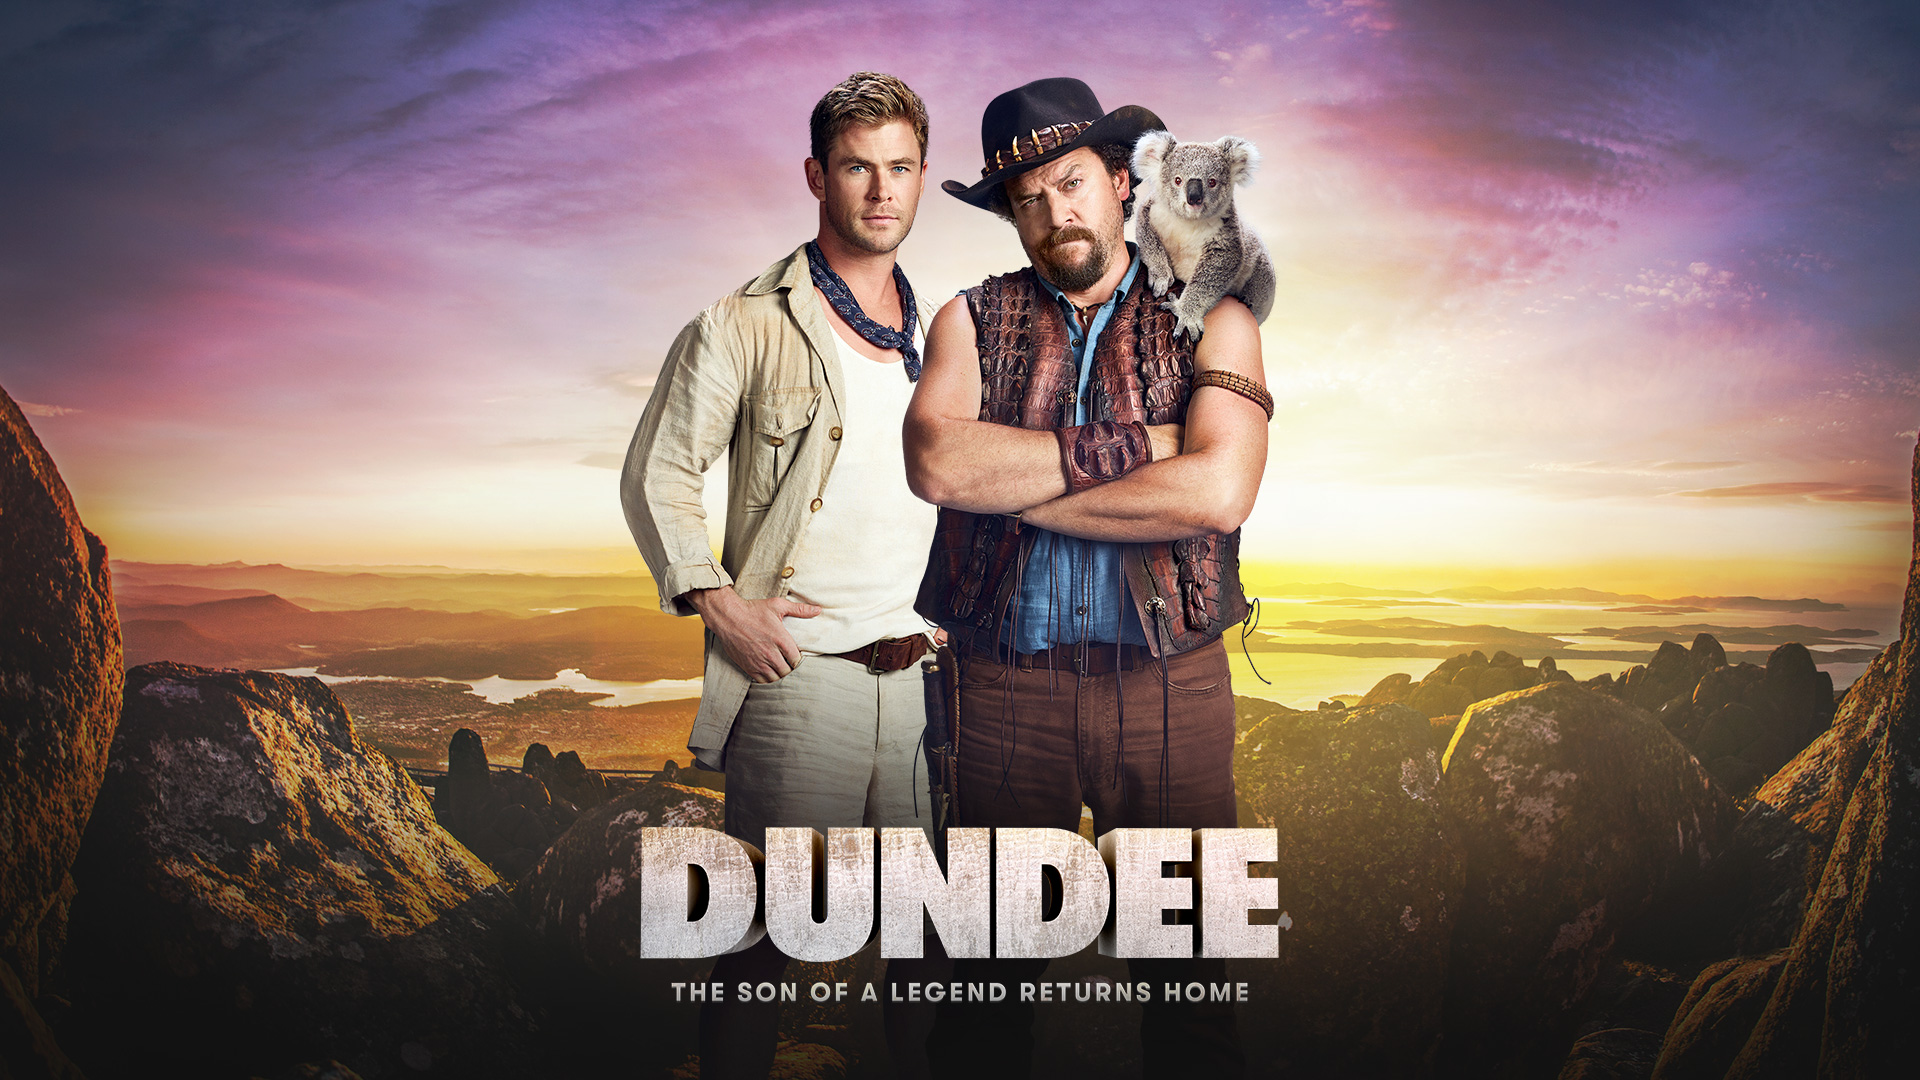 Dundee: The Son of a Legend Returns Home(2018) Poster